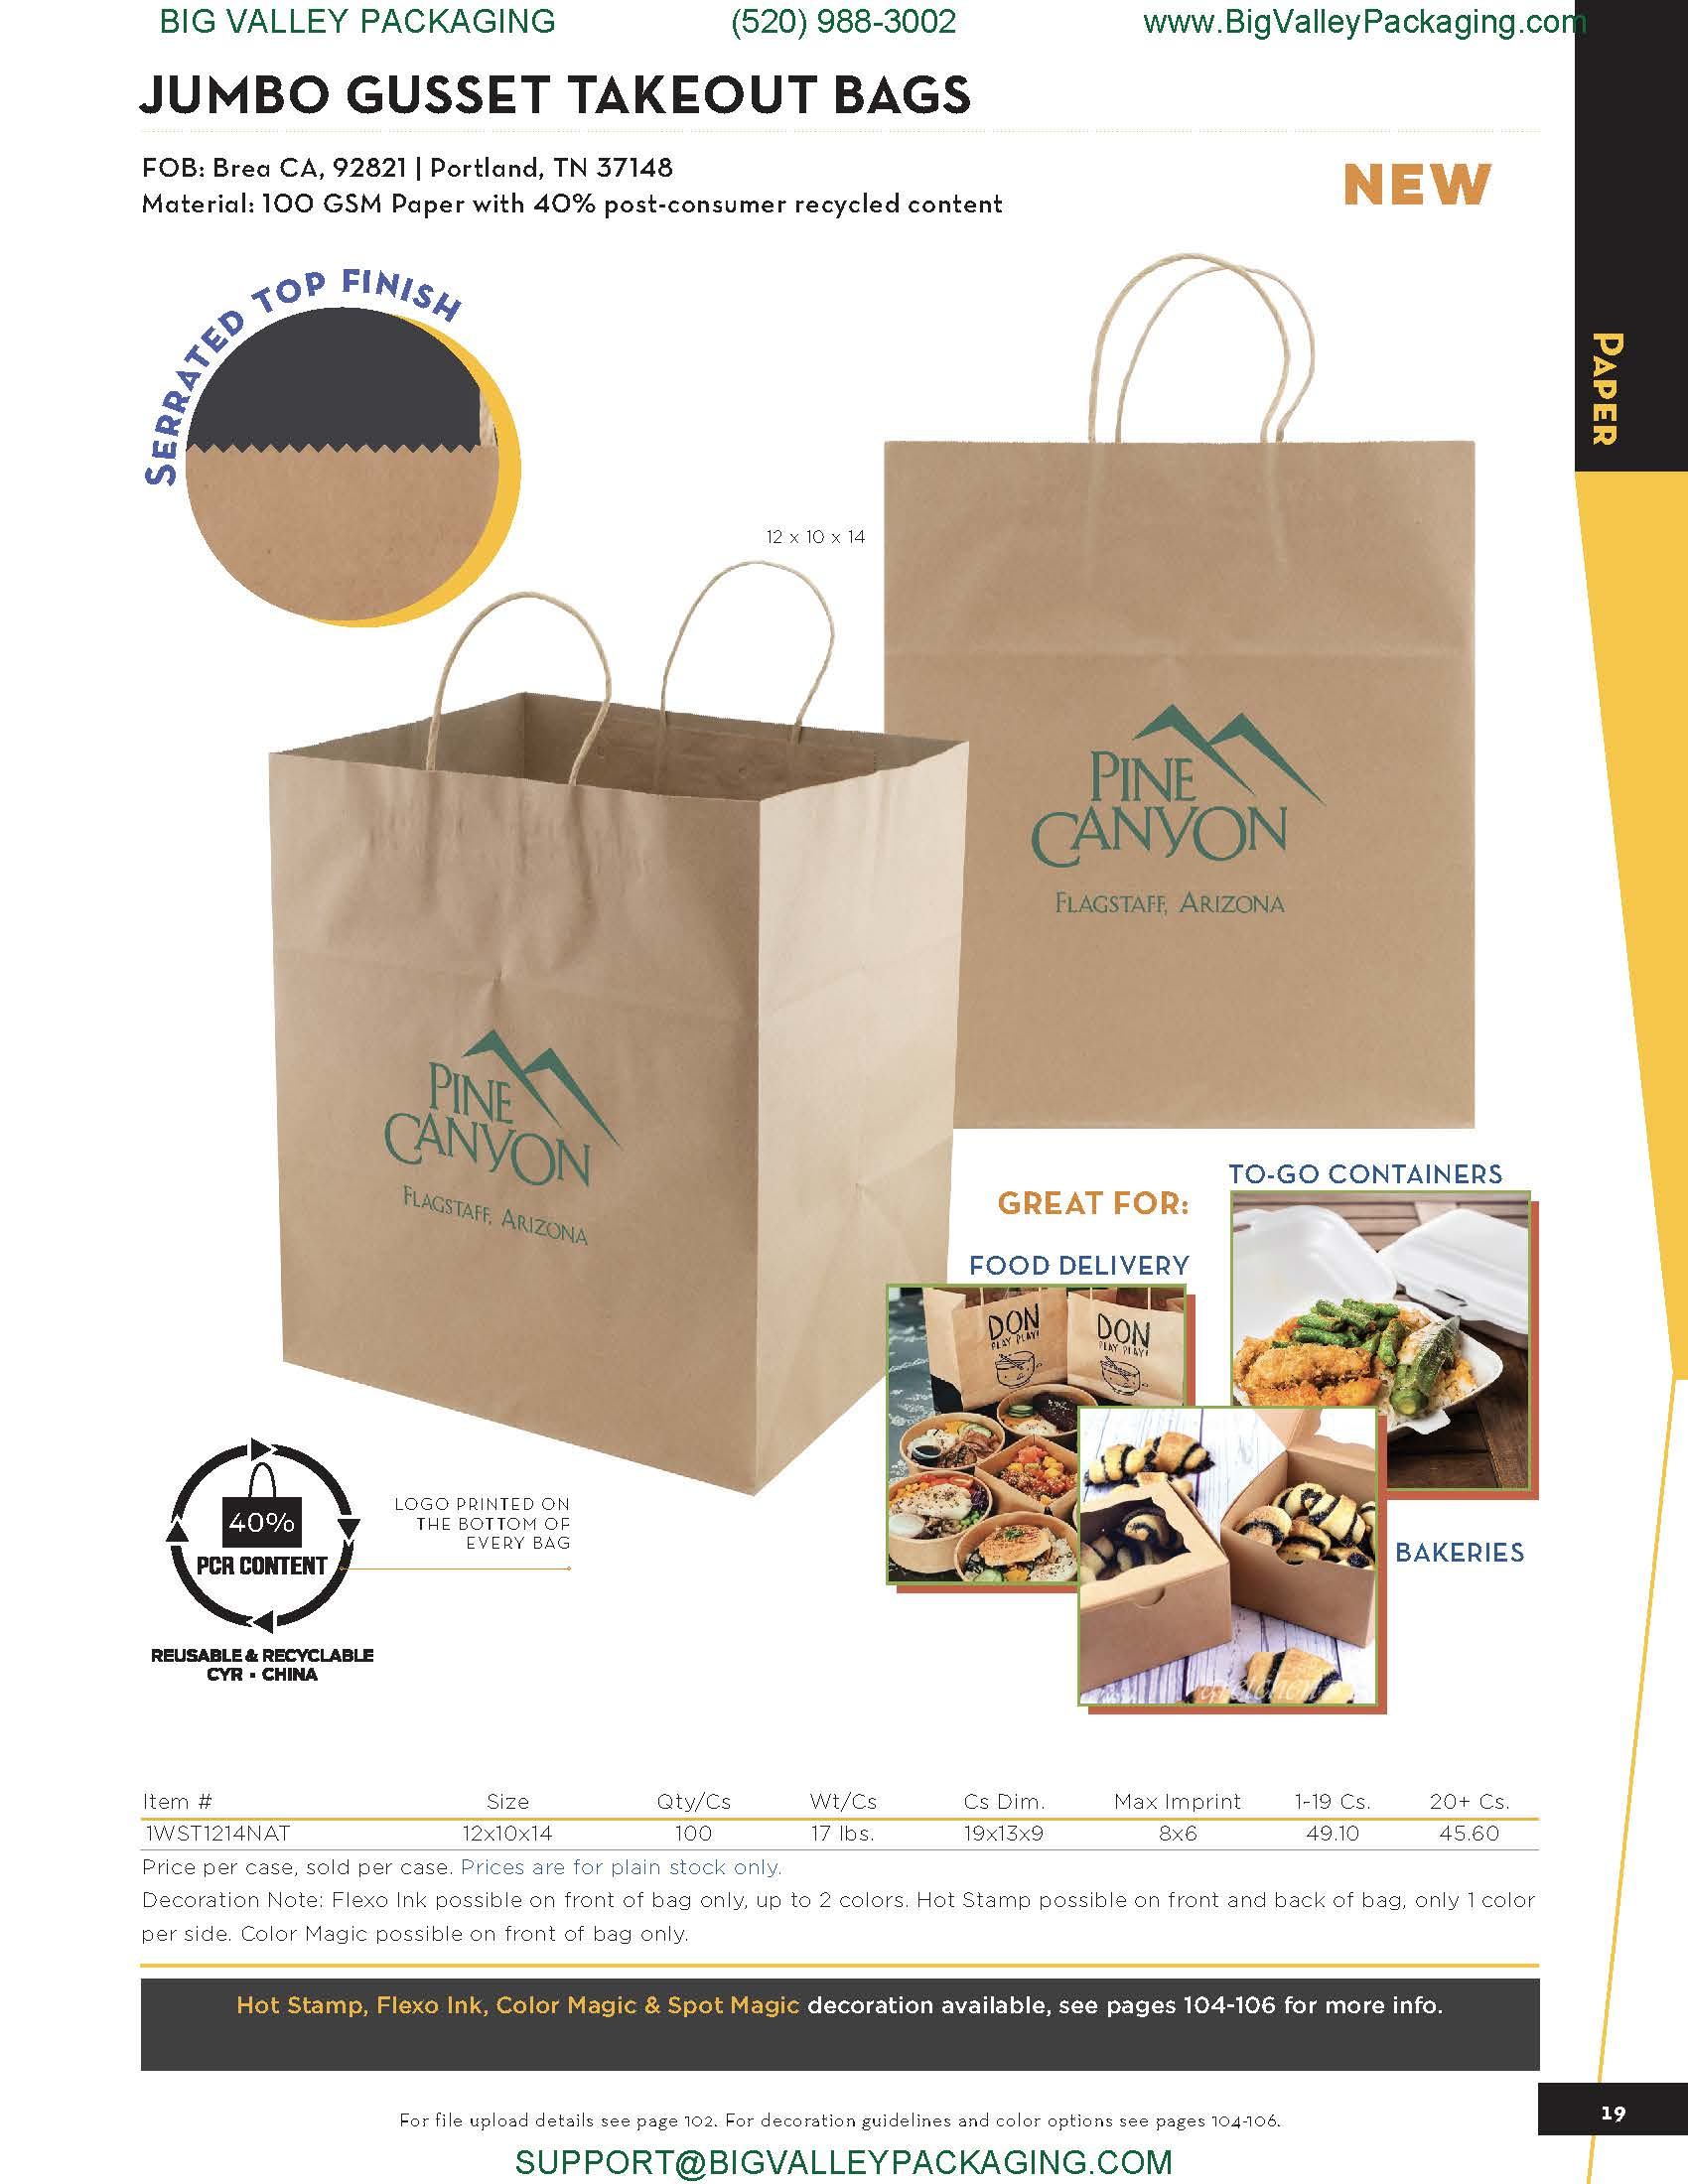 JUMBO GUSSET TAKEOUT BAGS